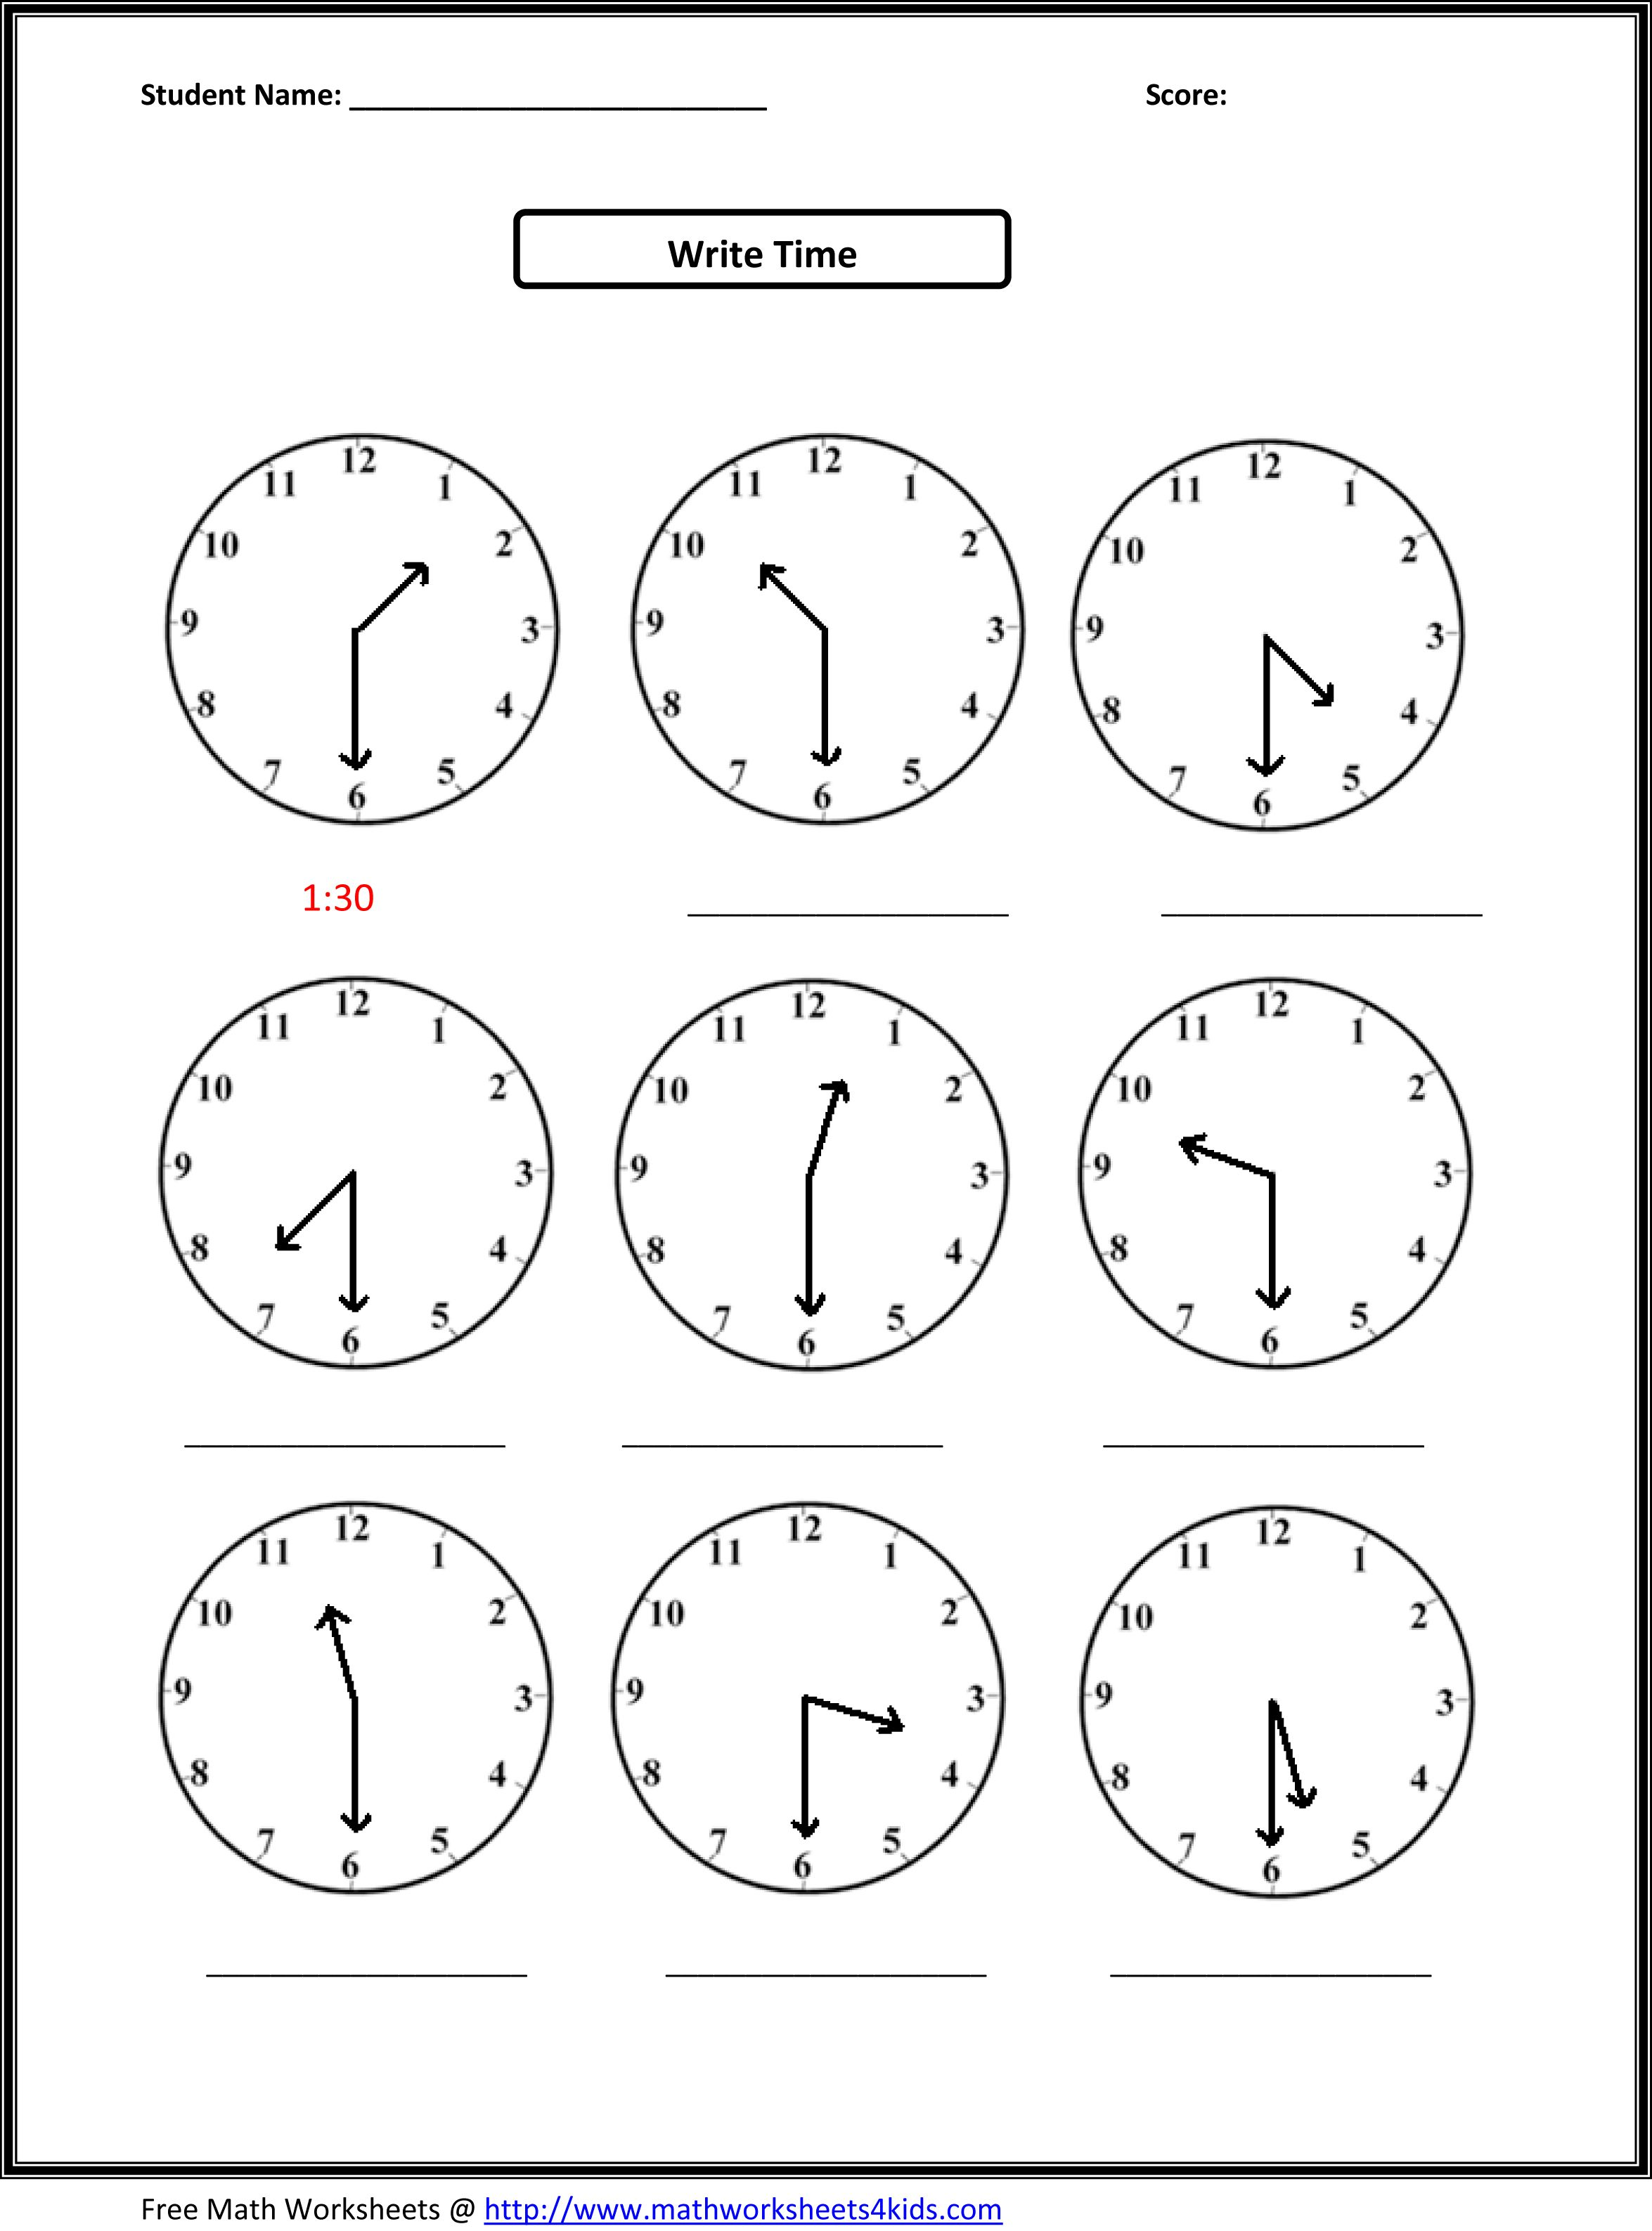 Weirdmailus  Sweet Worksheet On Time For Grade   Reocurent With Great Free Printable Telling Time Worksheets Nd Grade  Reocurent With Lovely Subtraction With Borrowing Worksheets Free Also Ks Maths Worksheets To Print In Addition Place Value Worksheets Fifth Grade And Free Worksheets For Science As Well As Kg  Maths Worksheets Additionally Japan Map Worksheet From Reocurentcom With Weirdmailus  Great Worksheet On Time For Grade   Reocurent With Lovely Free Printable Telling Time Worksheets Nd Grade  Reocurent And Sweet Subtraction With Borrowing Worksheets Free Also Ks Maths Worksheets To Print In Addition Place Value Worksheets Fifth Grade From Reocurentcom